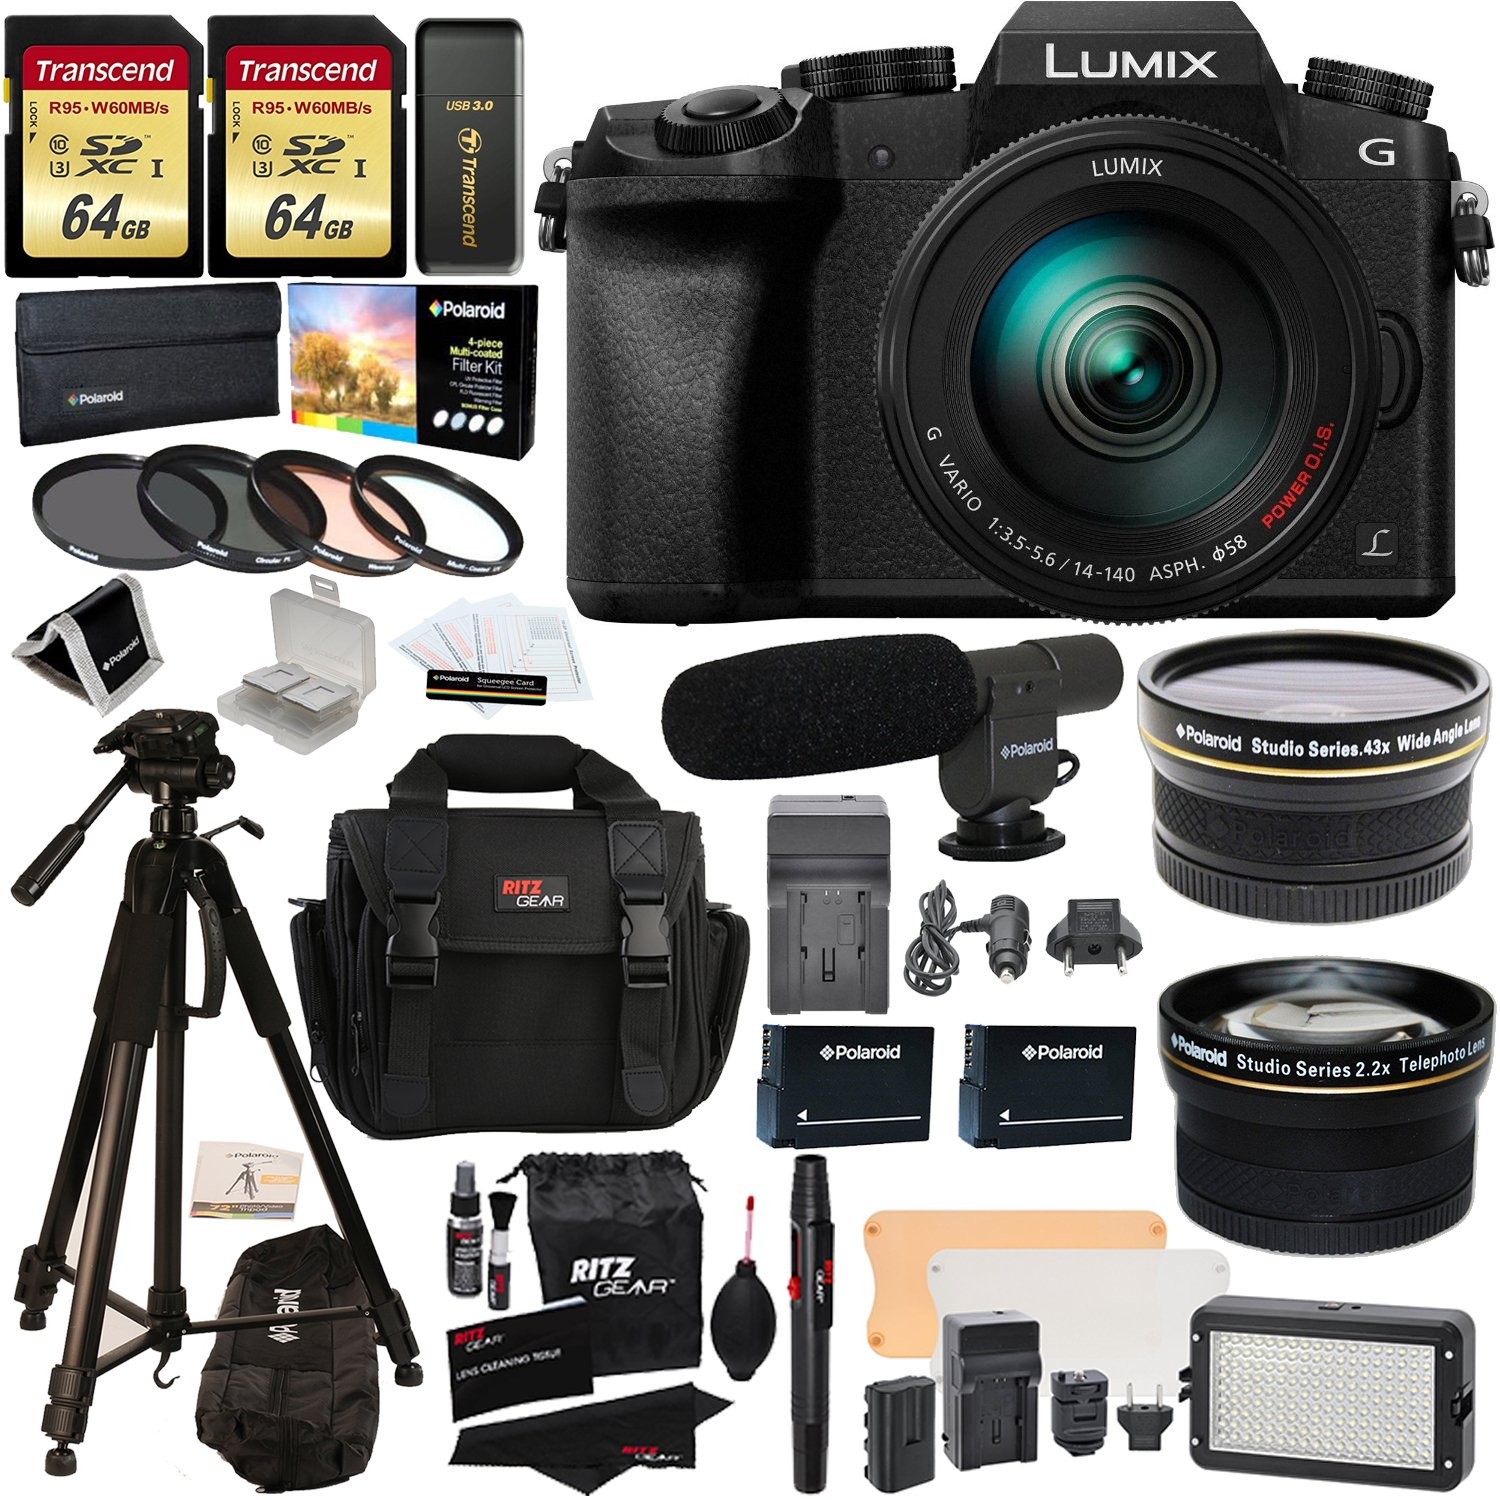 Panasonic DMC-G7HK Digital Single Lens Mirrorless Camera 14-140 mm Lens Kit, 4K + 2 Transcend 64 GB + LED Kit + Polaroid 72'' Tripod + Microphone + Polaroid Wide Angle + 2.2X HD Telephoto Lenses + More